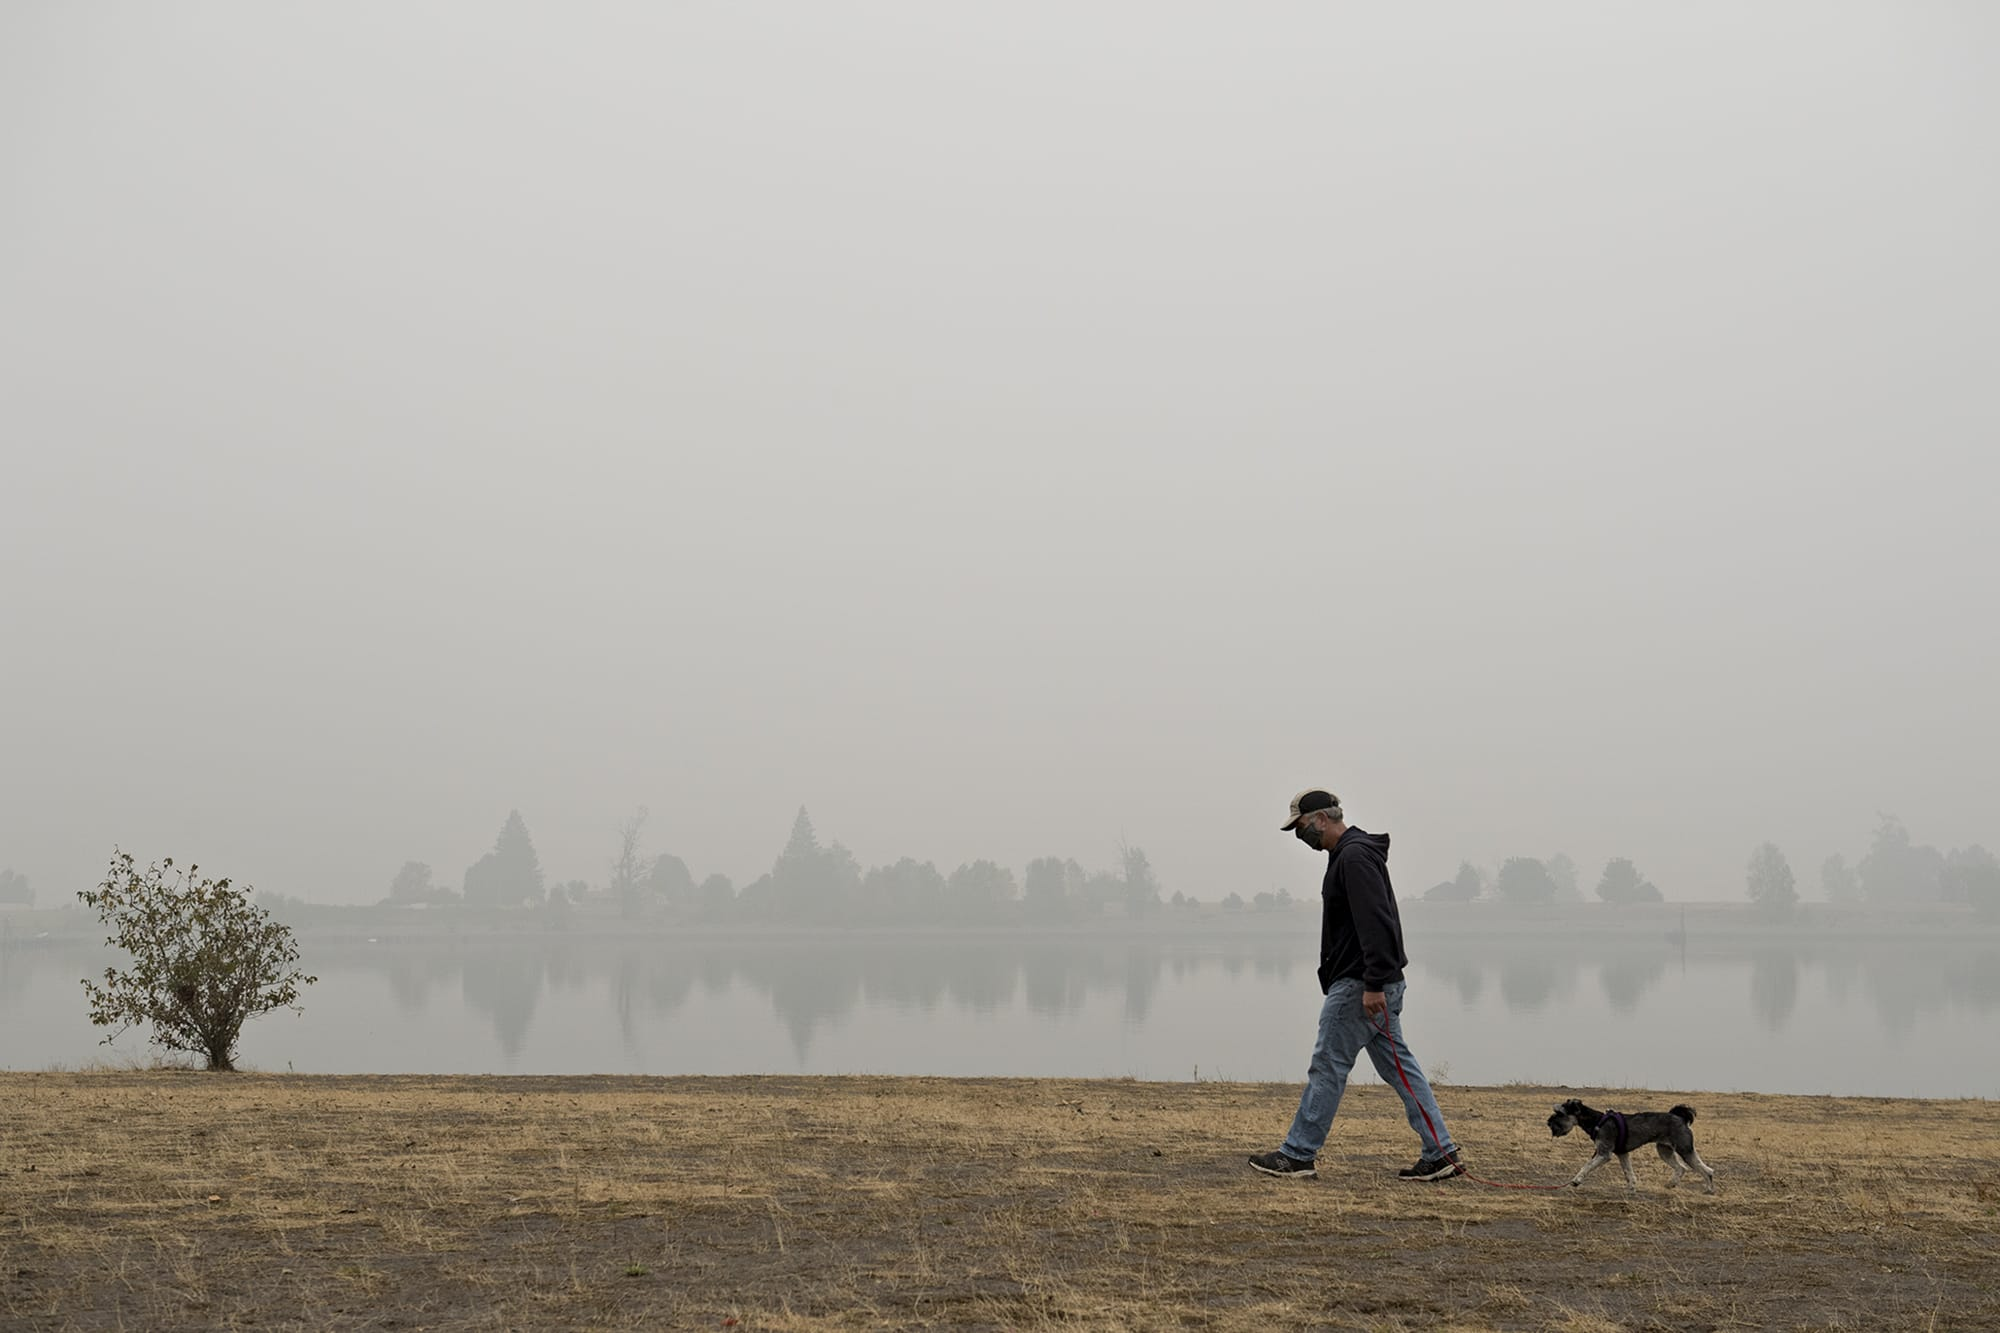 """Frank Schmit of Vancouver wears a mask while taking his dog, Ripley, a mini schnauzer, for a stroll as thick wildfire smoke obscures the visibility of trees across the water at Frenchman's Bar Regional Park on Monday morning, Sept. 14, 2020. Schmit said the fires and the smoke are just the latest in a list of unusual events that have happened in 2020. """"It's been a hell of a year,"""" he said."""